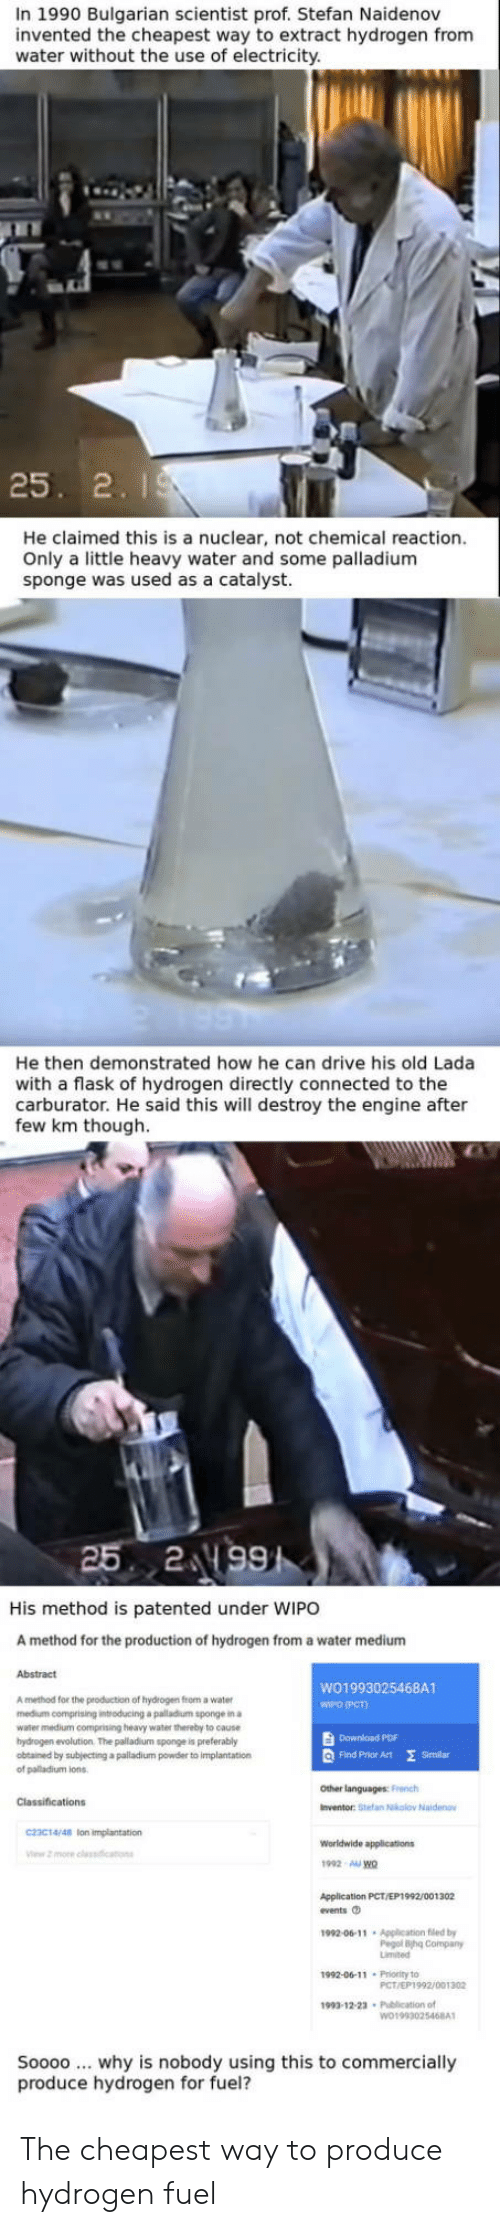 Connected, Drive, and Evolution: In 1990 Bulgarian scientist prof. Stefan Naidenov  invented the cheapest way to extract hydrogen from  water without the use of electricity  25. 2. I  He claimed this is a nuclear, not chemical reaction.  Only a little heavy water and some palladium  sponge was used  as a catalyst.  He then demonstrated how he can drive his old Lada  with a flask of hydrogen directly connected to the  carburator. He said this will destroy the engine after  few km though  His method is patented under WIPO  A method for the production of hydrogen from a water medium  Abstract  WO1993025468A1  WIPO (PCT)  A method for the production of hydrogen from a water  medium comprising introducing a palladium sponge in a  water medium comprising heavy water thereby to eause  hydrogen evolution. The palladium sponge is preterably  obtained by subjecting a palladium powder to implantation  of palladium ions  Download PDF  Q Find Prhor Art E  Similan  Other languages: French  Inventor: Stefan Nkolov Naide  C23C14/48 lon impiantation  1992 AU wo  Application PCT/EP1992/001302  fvents O  1992-06-11 Application fled by  Pegol ihg Company  1992-00-11 Prority to  PCT/EP1992/001302  1993-12-23 Publication of  Soooo why is nobody using this to commercially  produce hydrogen for fuel? The cheapest way to produce hydrogen fuel